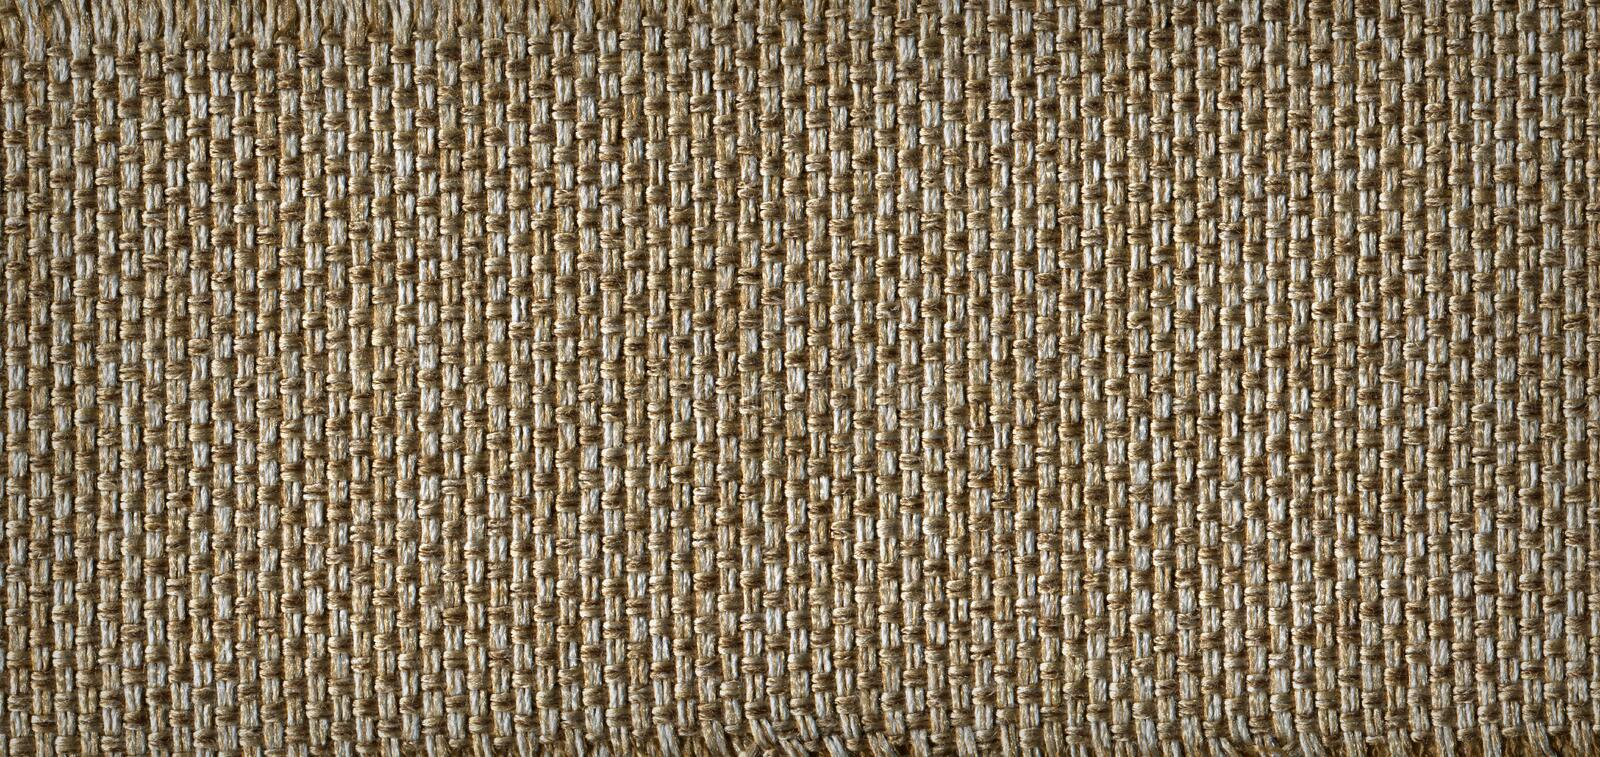 Download Fibrous synthetic fabric stock image. Image of criss - 16881851